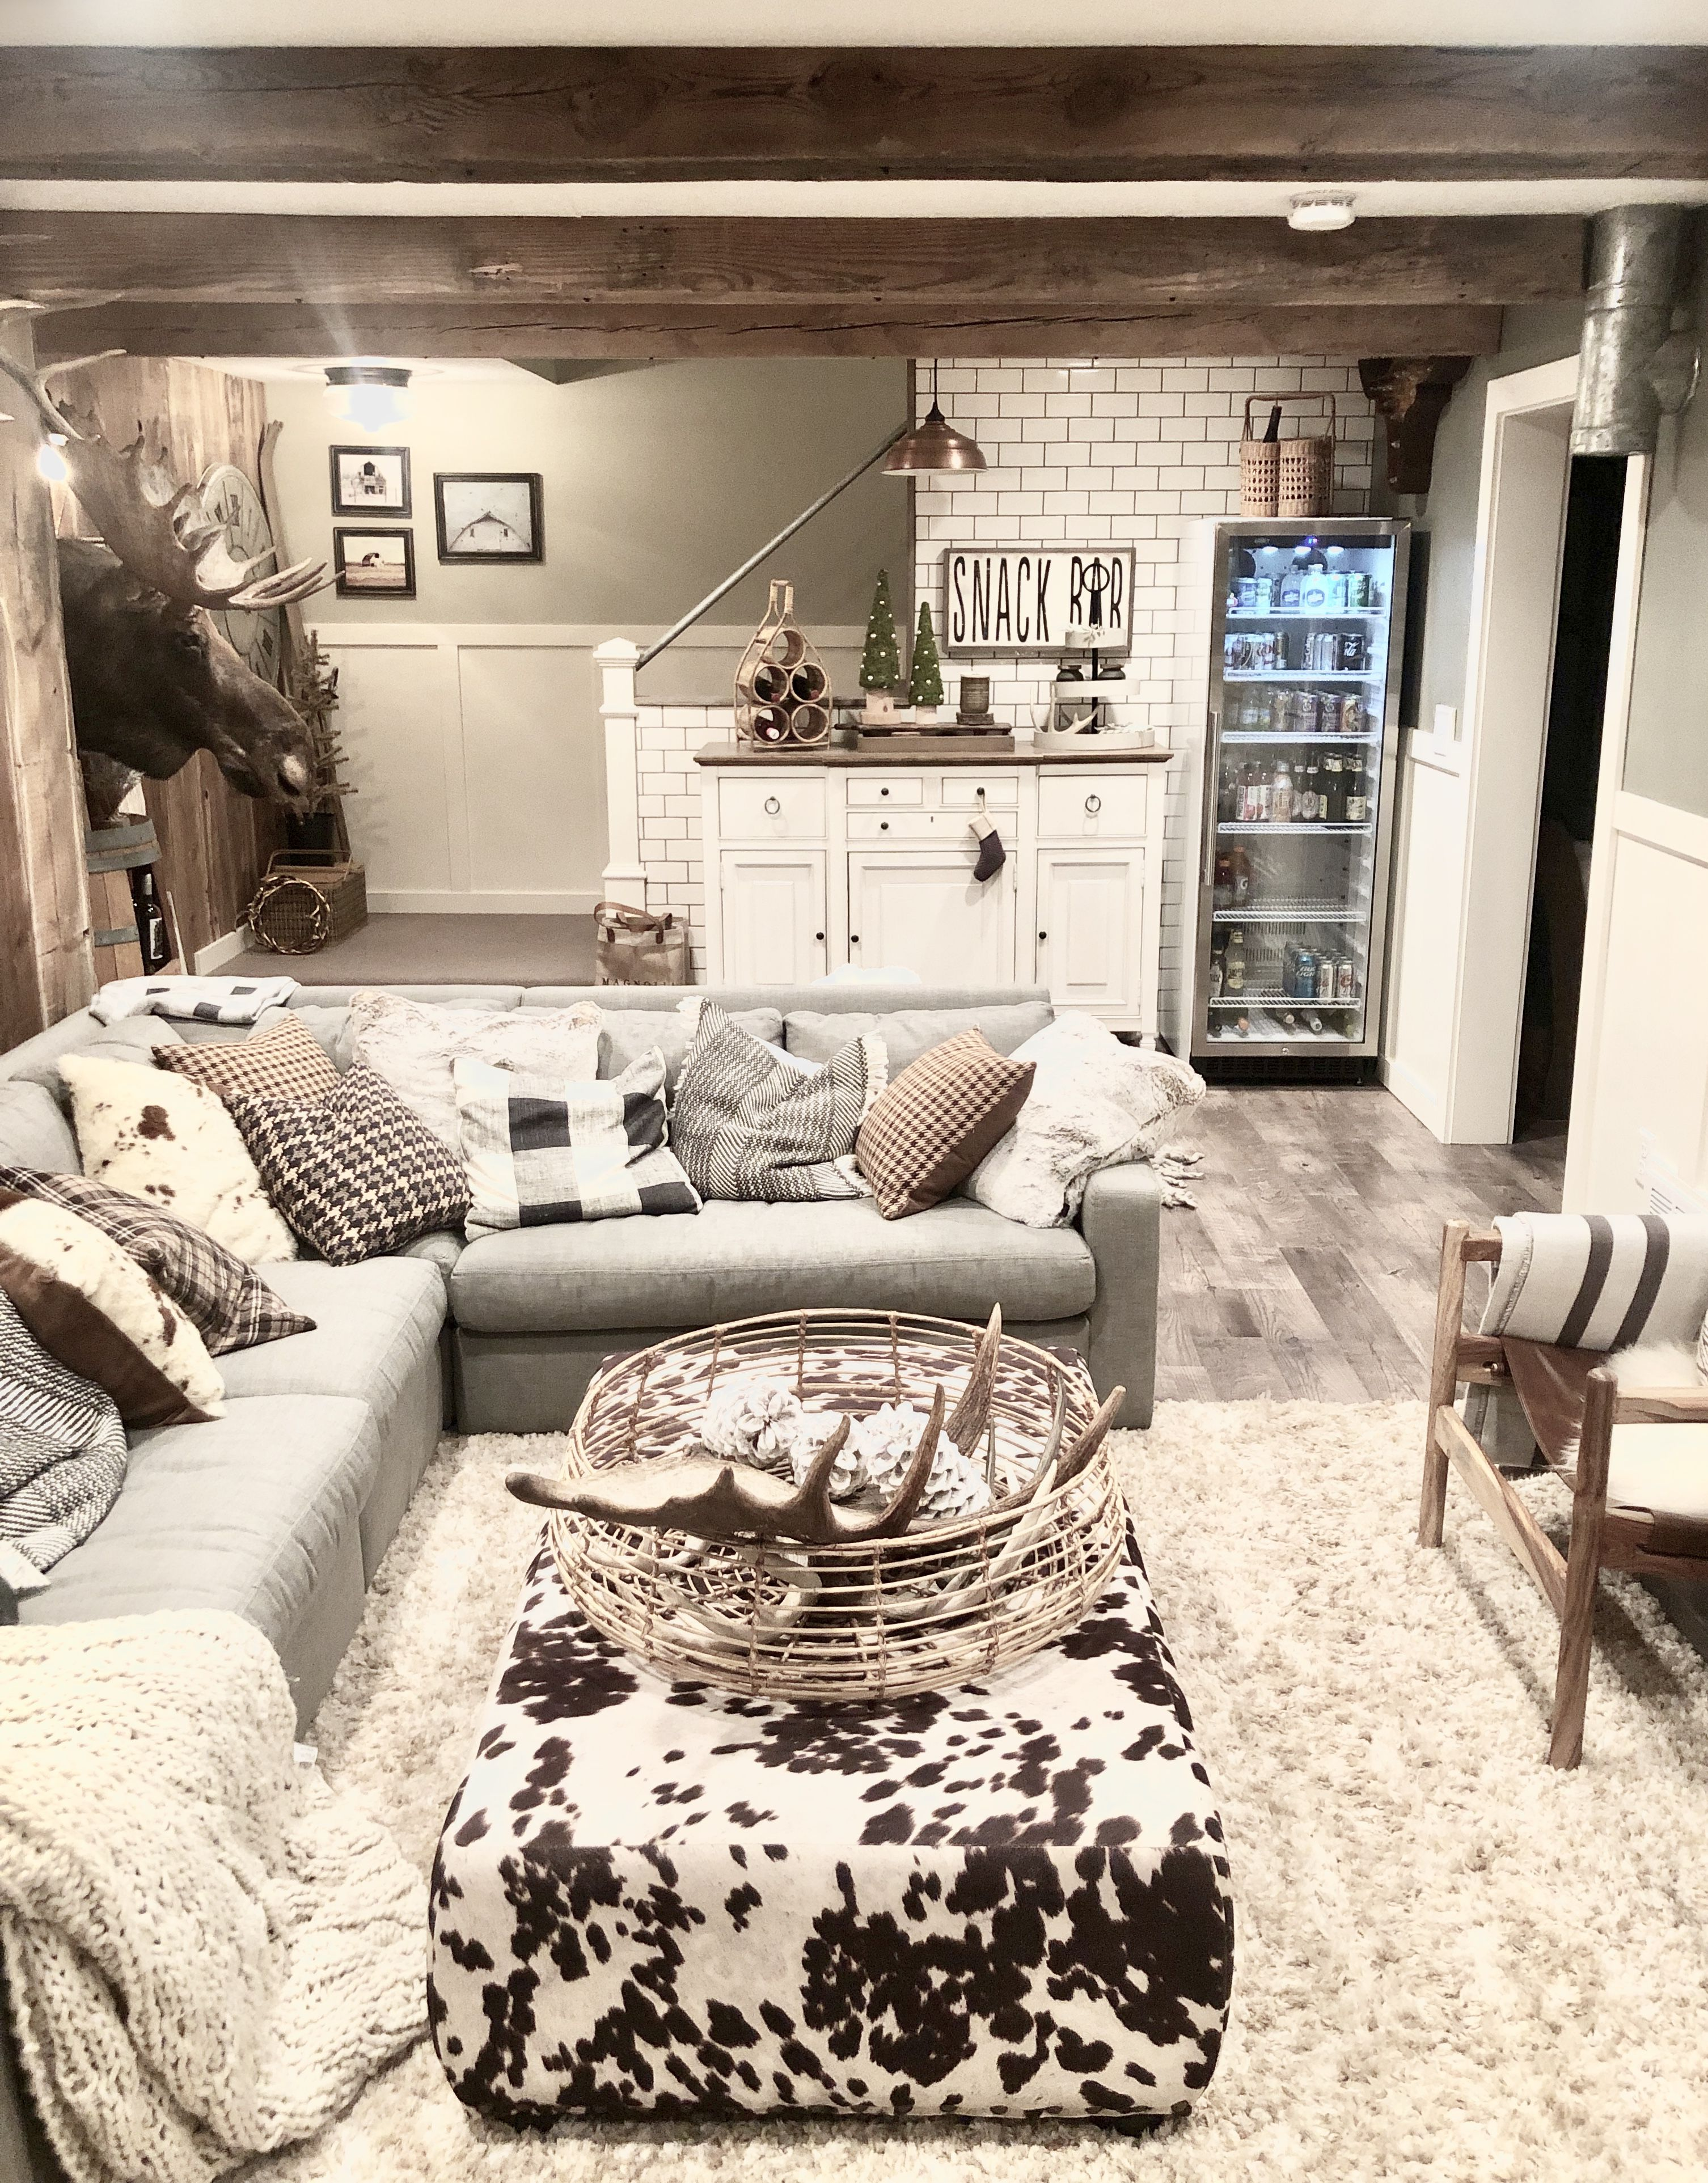 15 Finished Basement Design Ideas